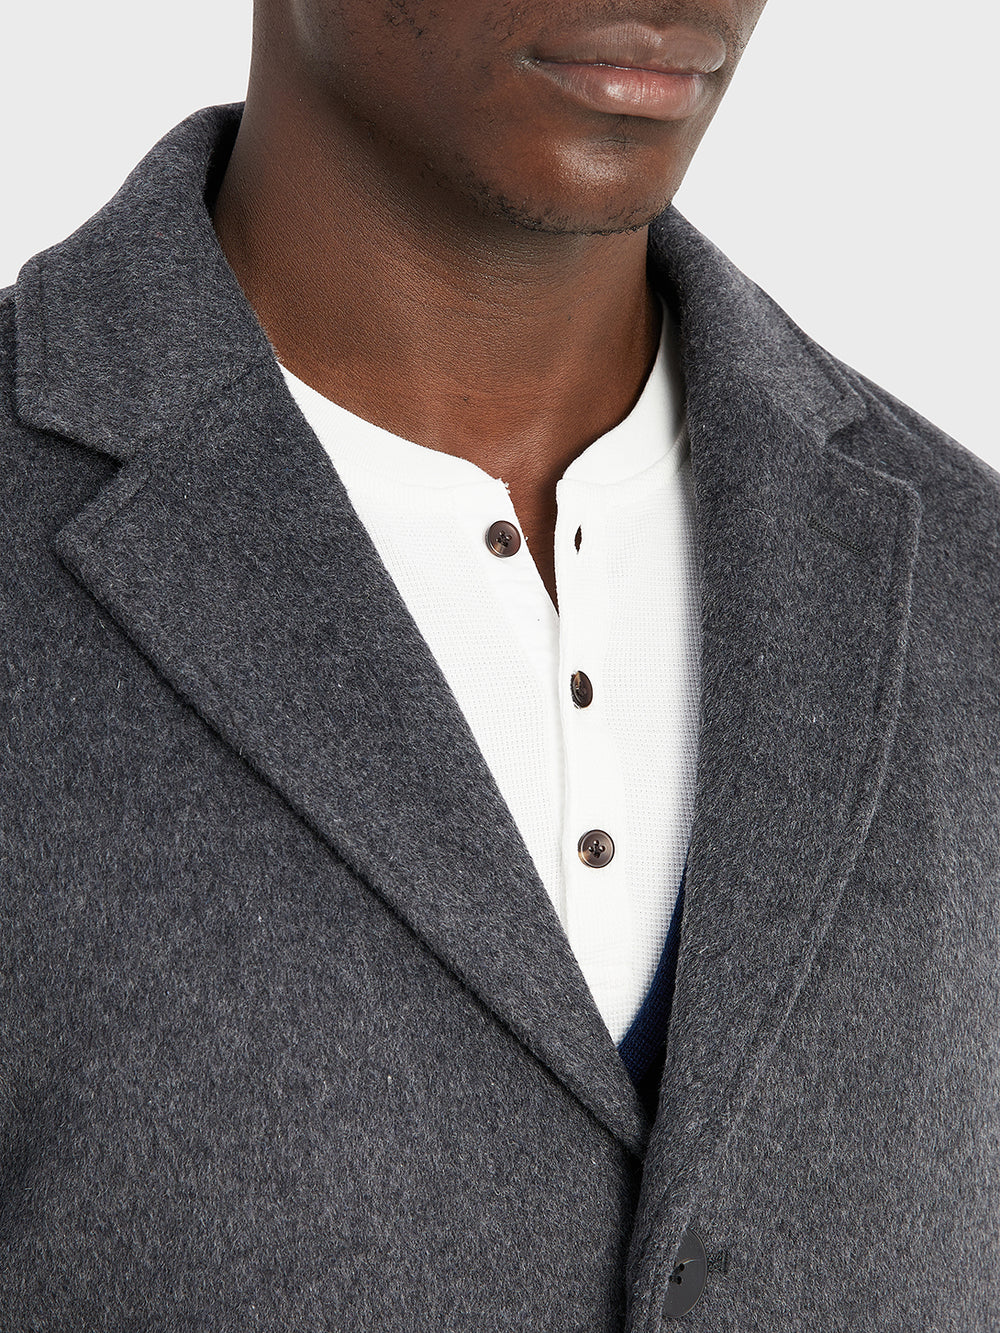 ONS Clothing Men's outerwear in DK GREY